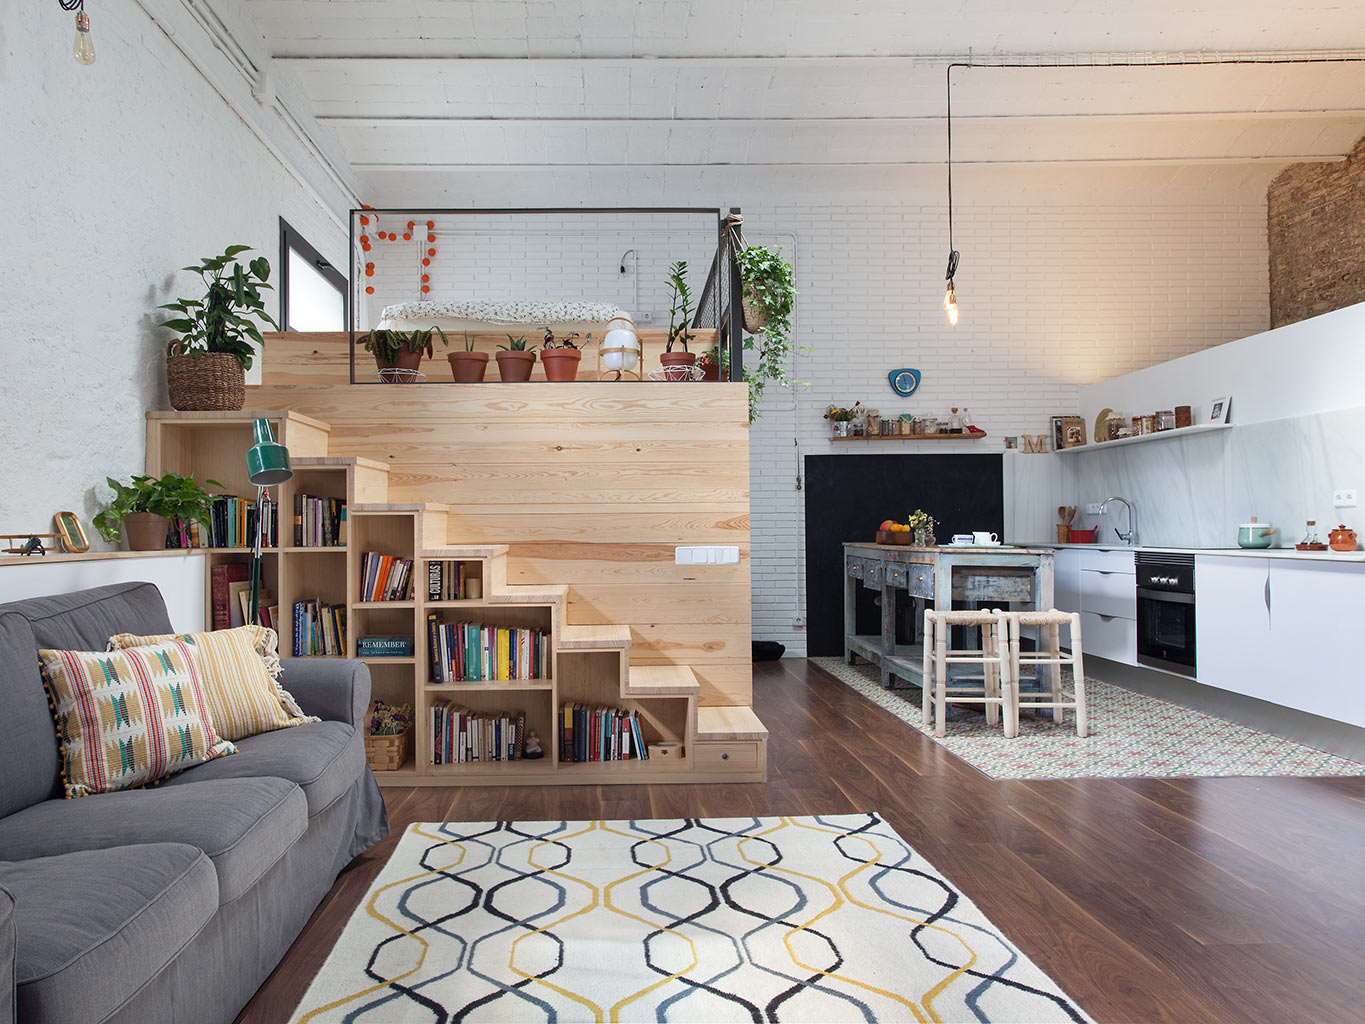 A barcelone un garage transform en loft planete deco a for Un poco chambre separee